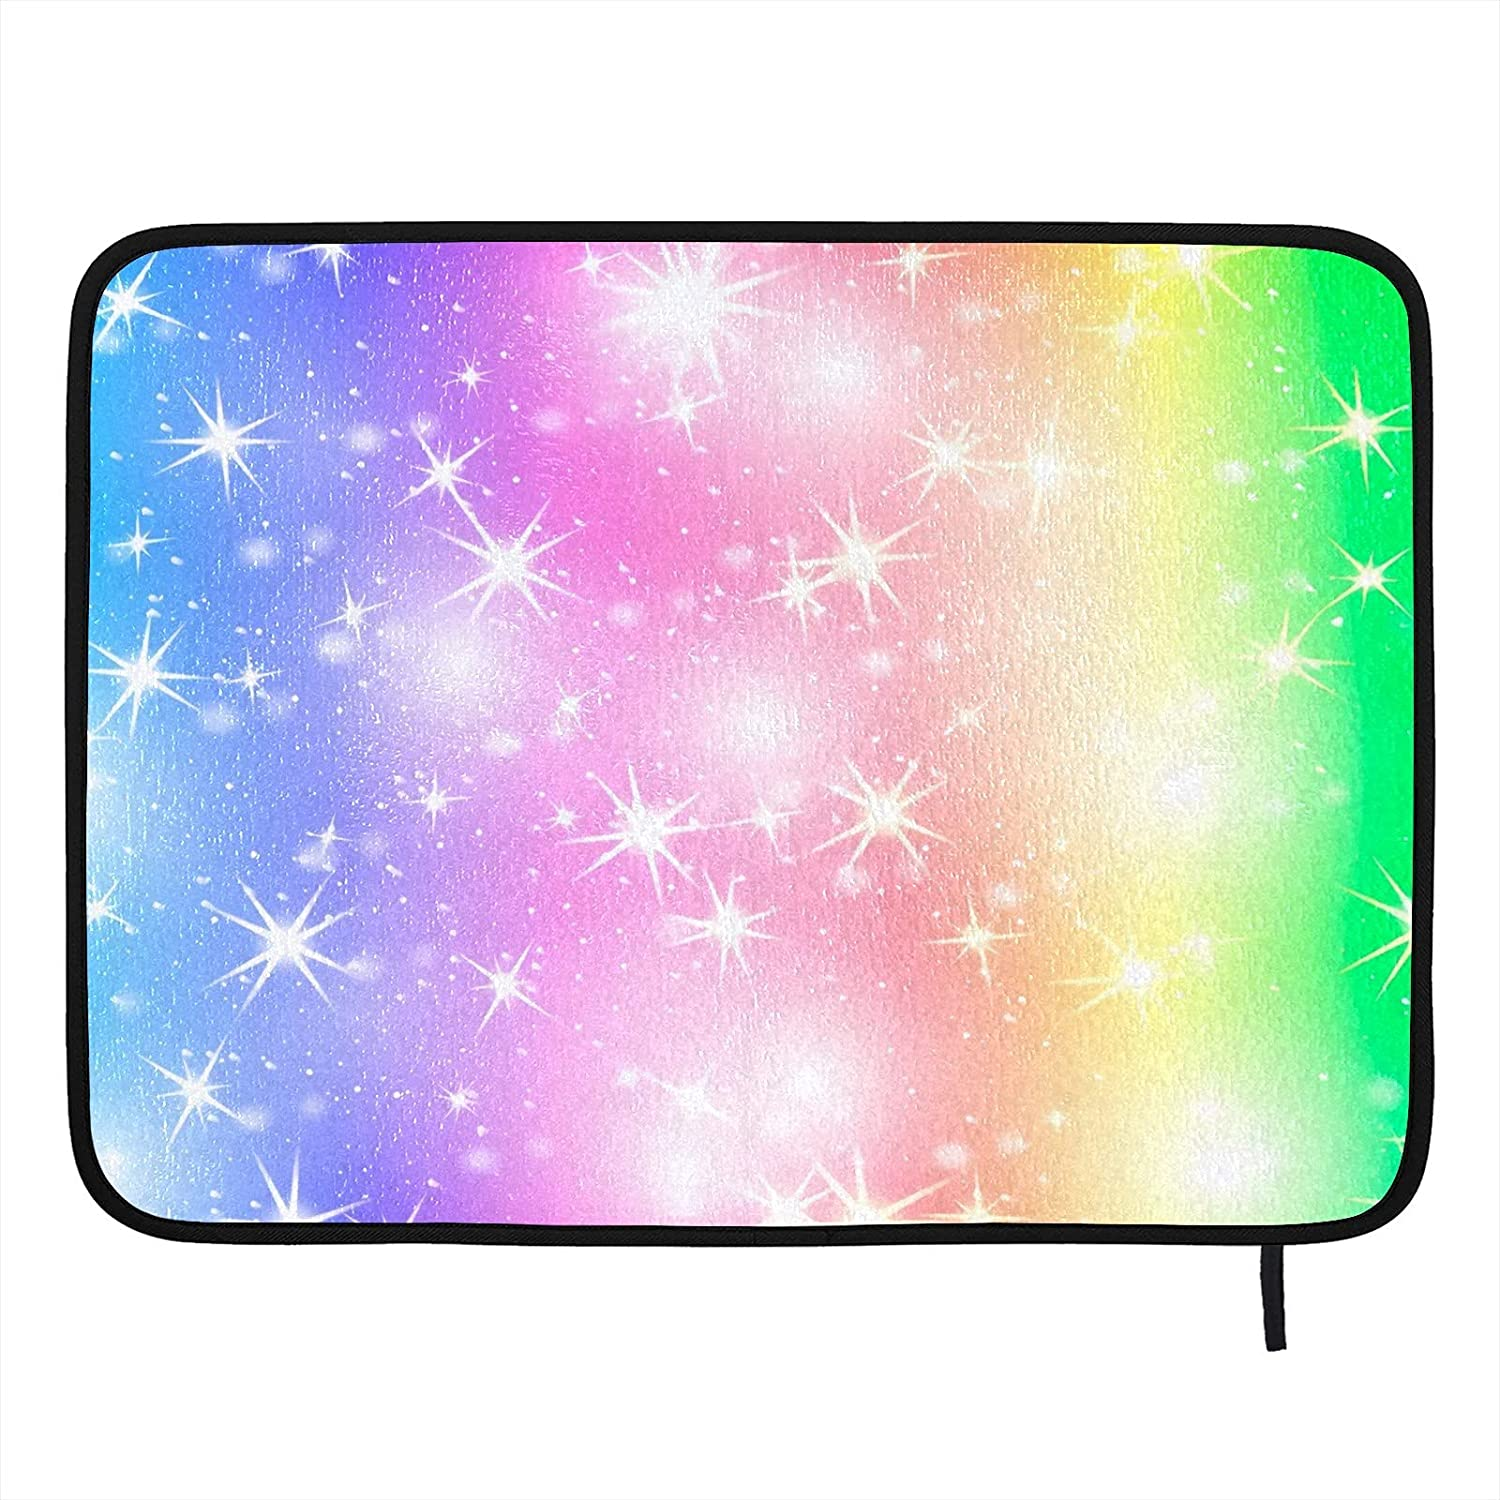 Absorbent Dish Drying Mat Glitter Star Rainbow Kitchen Counter Mat Protector Heat Resistant Drying Pad Protector Suitable for Kitchen Sink Dining Table decor 24x18 inch